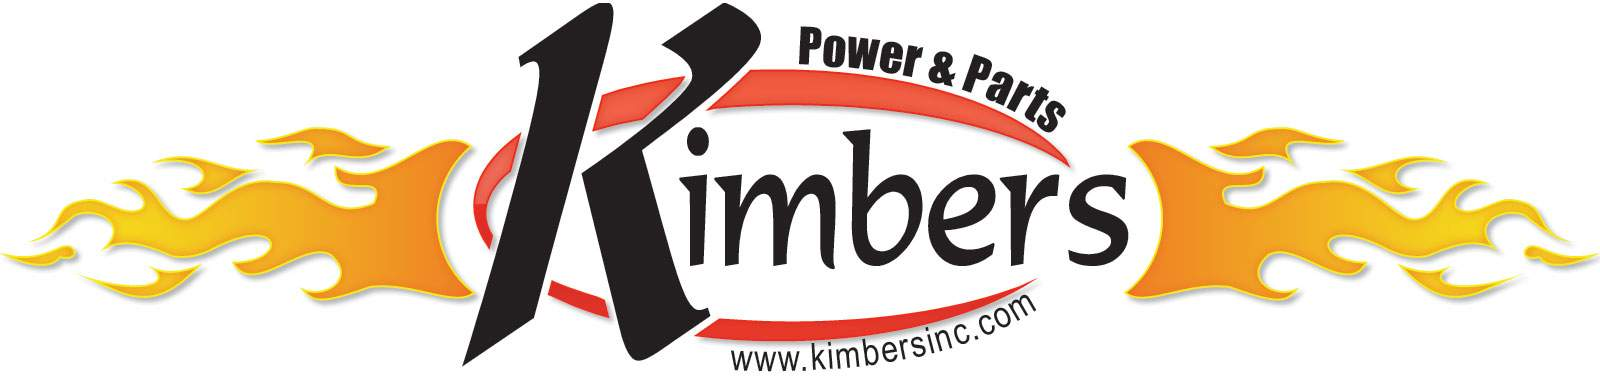 Kimber's, Inc. Since 1927